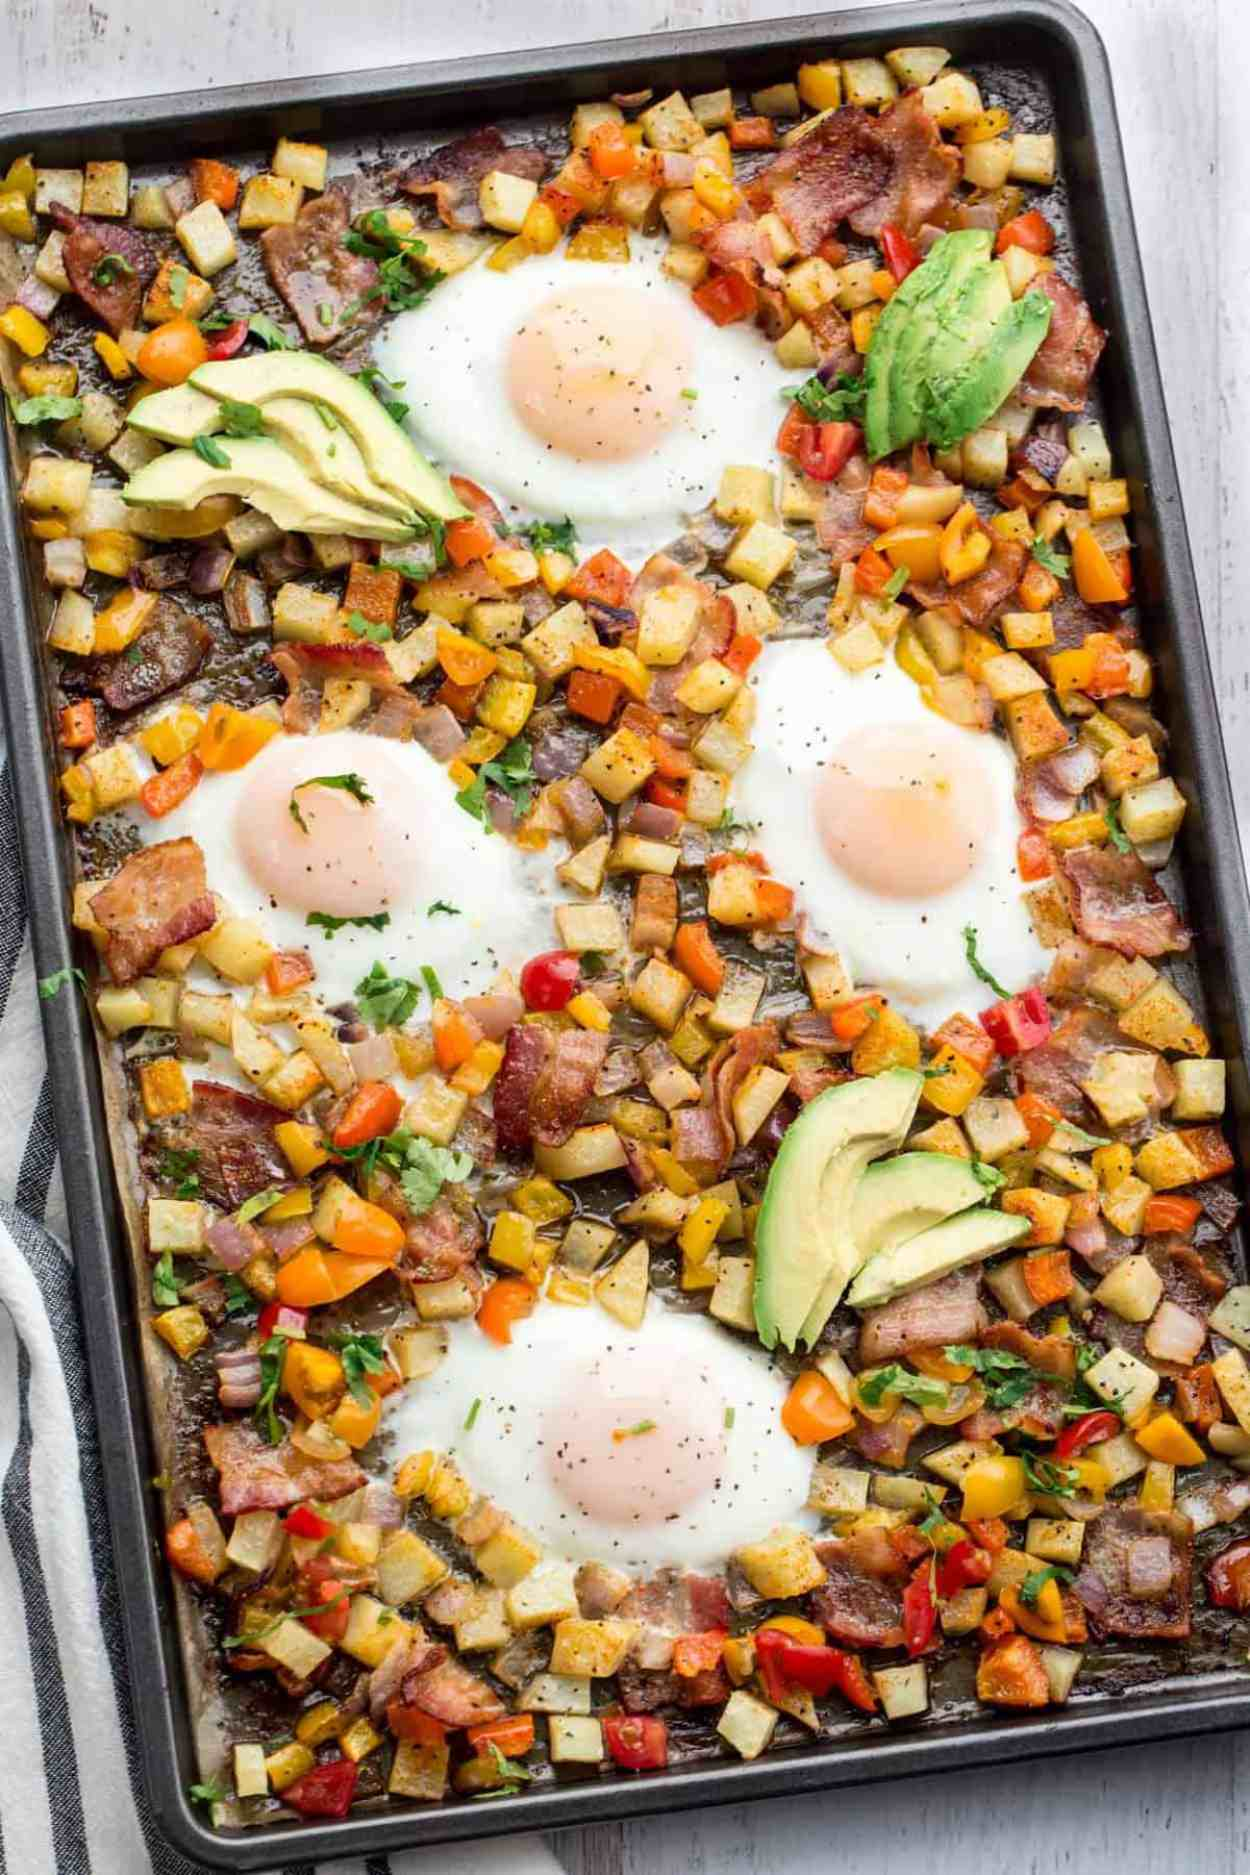 One pan breakfast potatoes and eggs with vegetables and bacon.